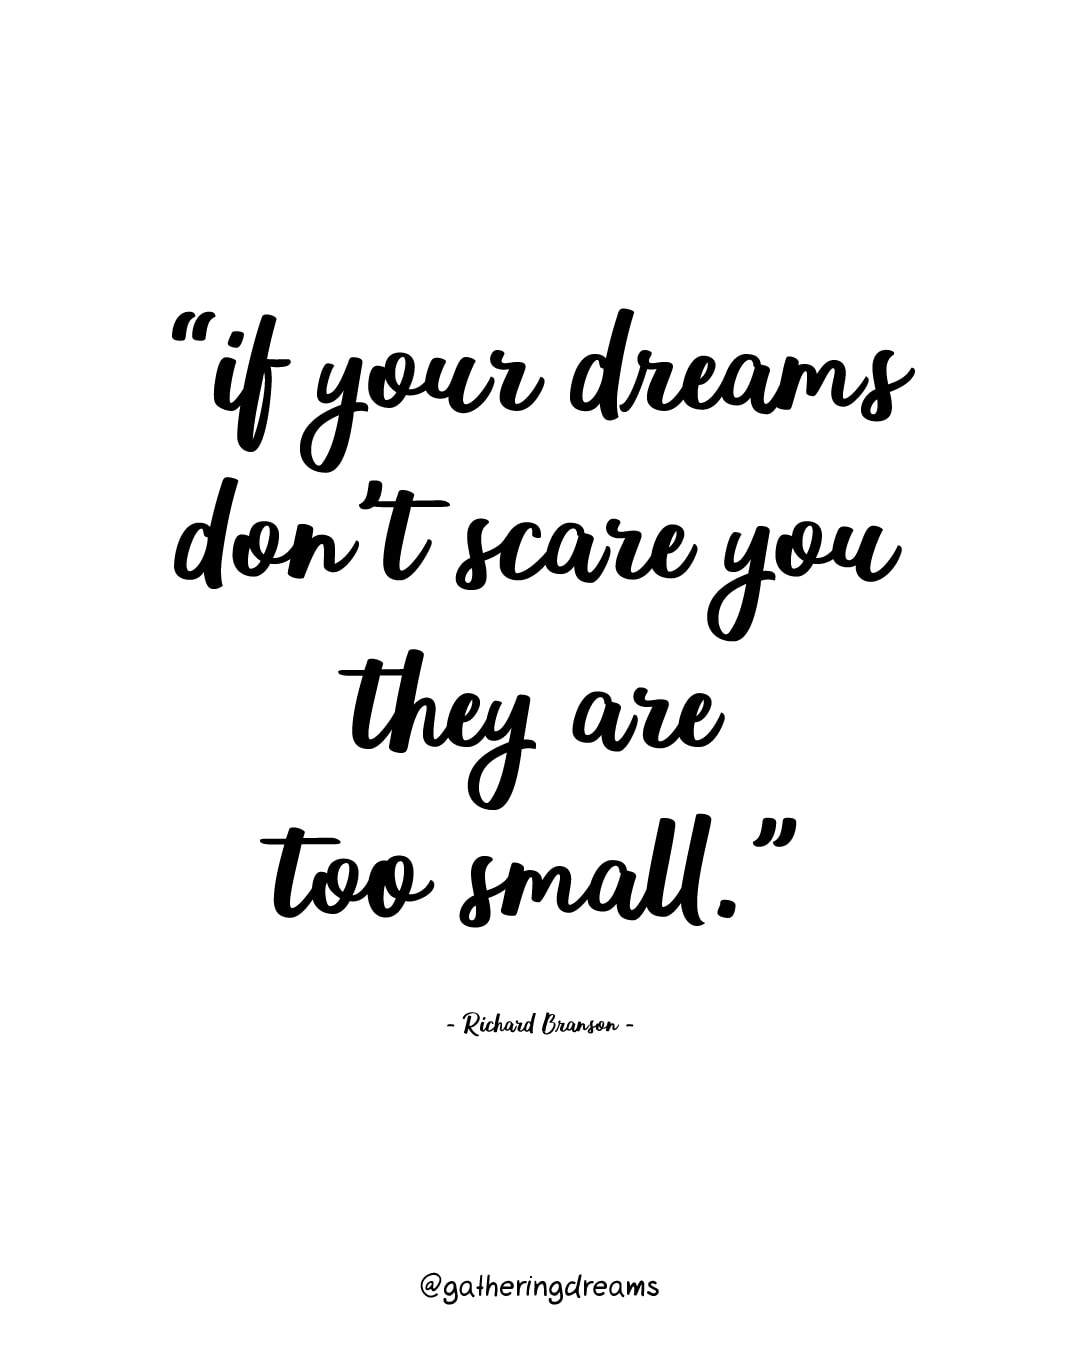 """""If your dreams don't scare you, they are too small."" Richard Branson - The best dreams quotes of all times #inspiration #inspirationalquotes #motivationalquotes #dreams"